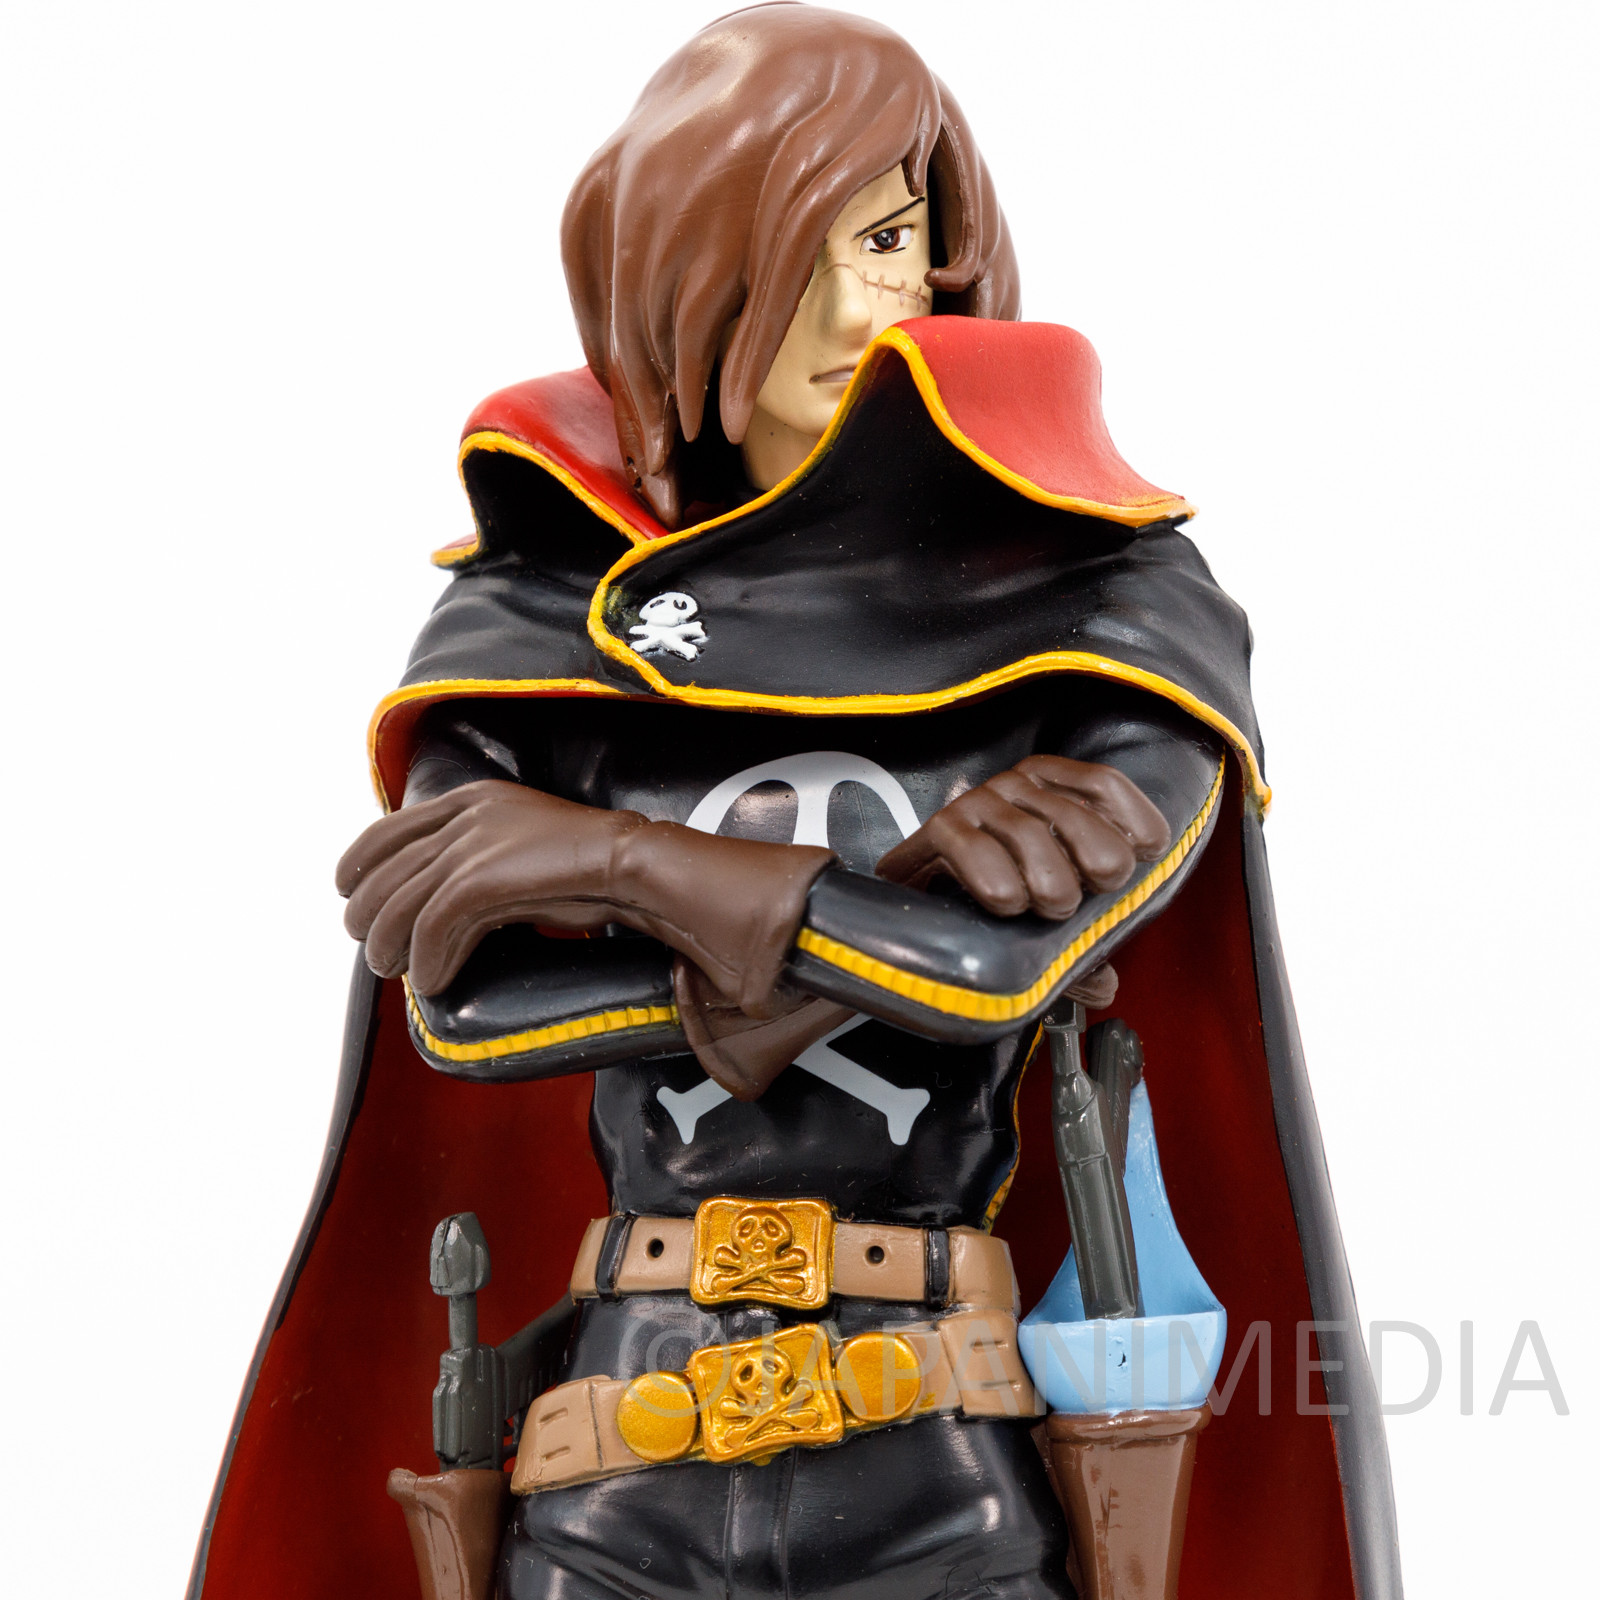 Galaxy Express 999 Captain Harlock Figure Reiji Matsumoto JAPAN ANIME